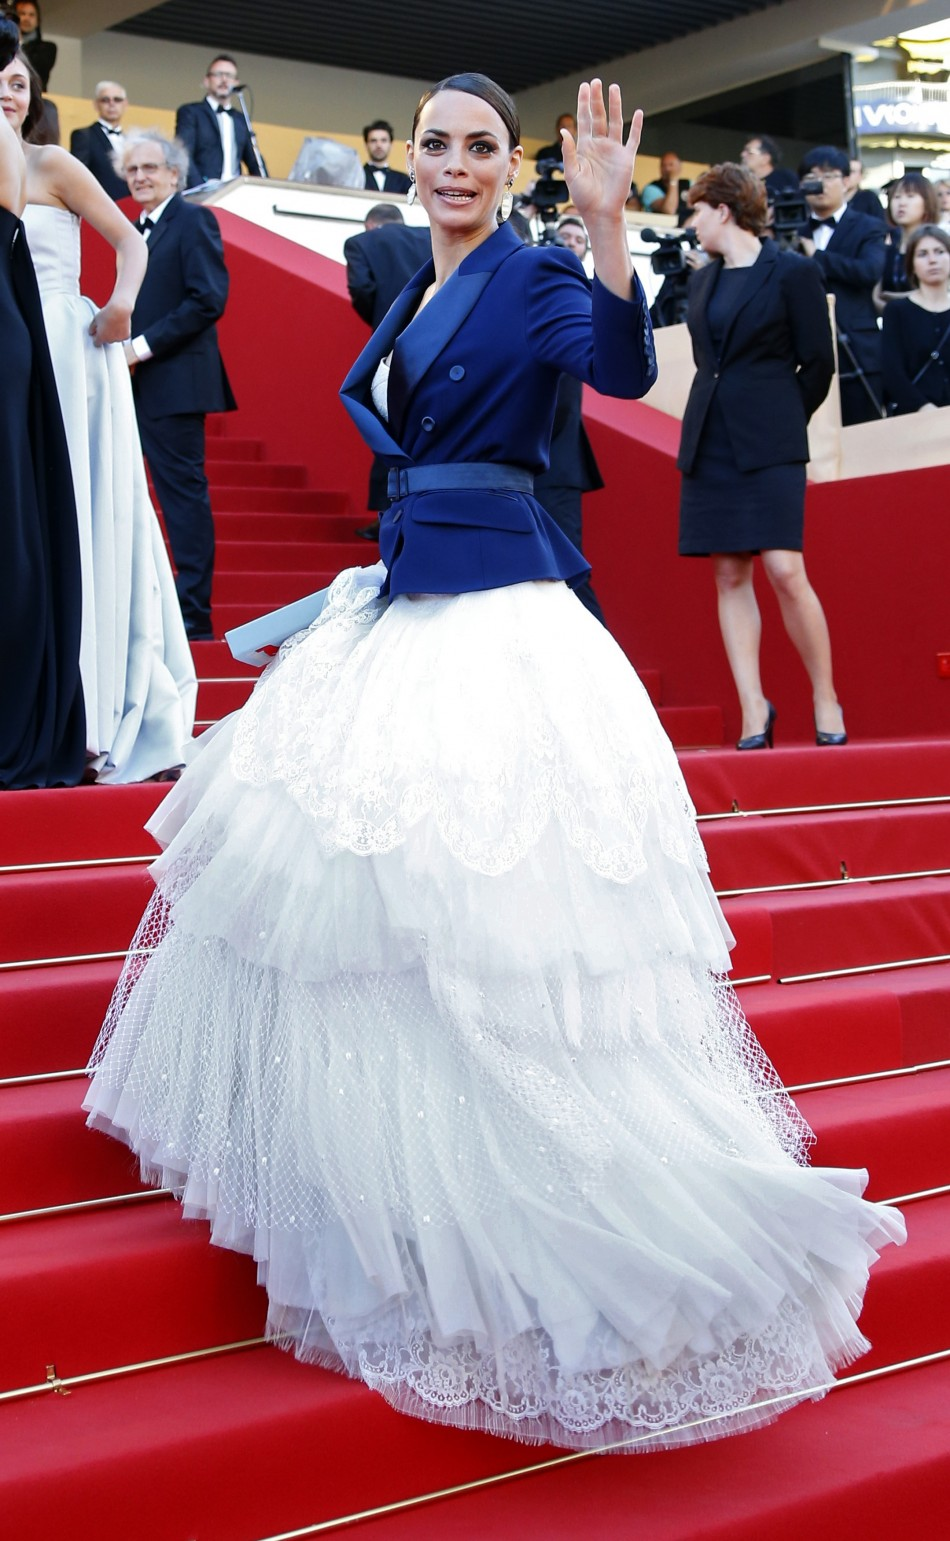 Cast member Berenice Bejo poses on the red carpet as she arrives for the screening of the film 'Le Passe' (The Past) in competition during the 66th Cannes Film Festival in Cannes May 17, 2013.